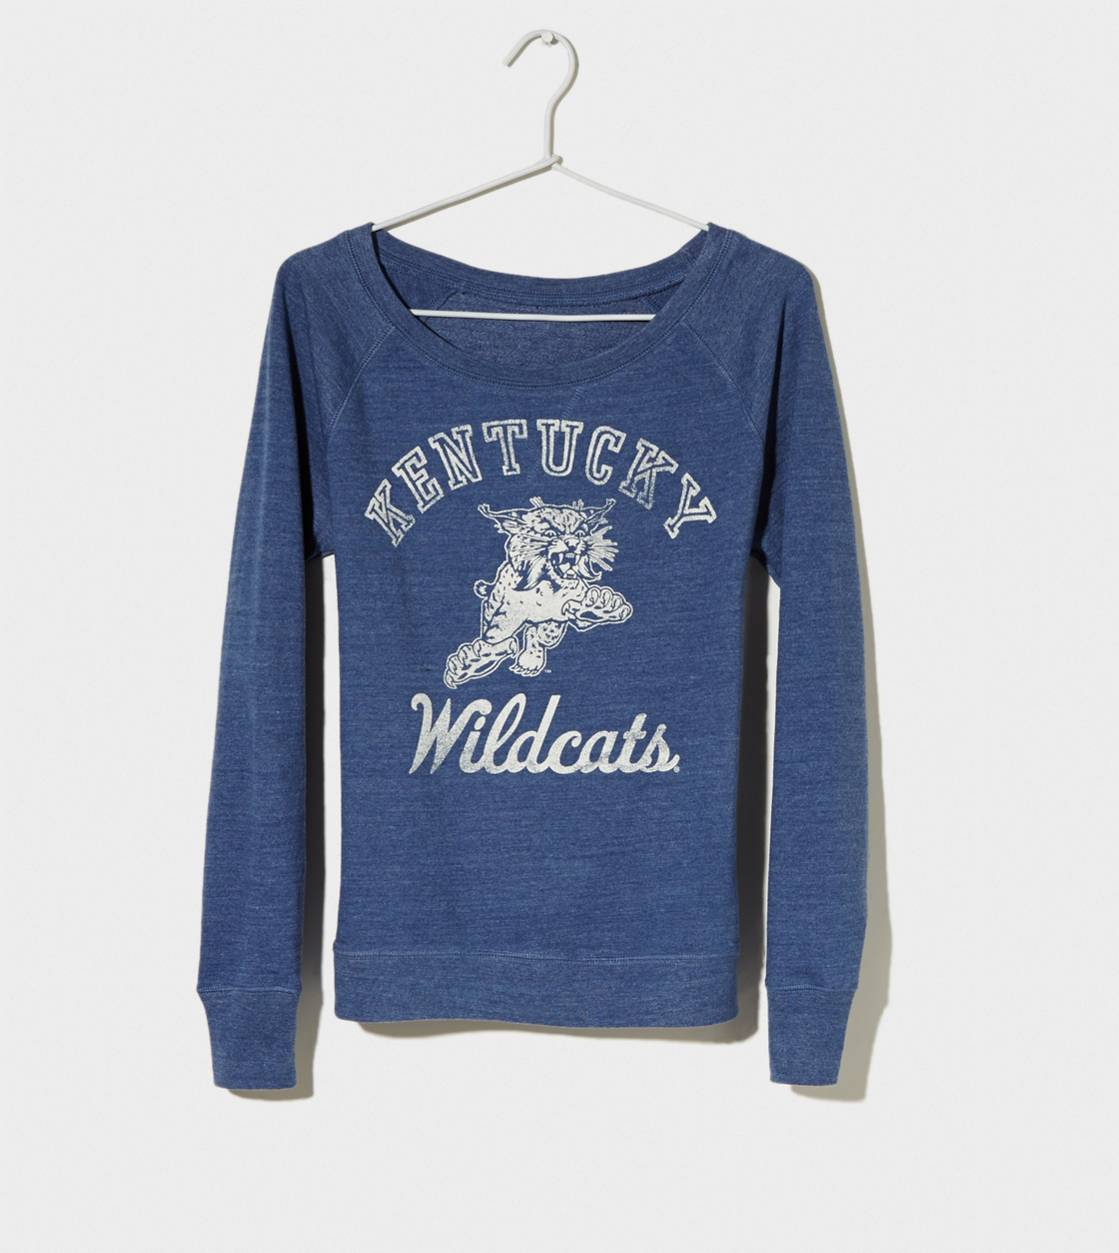 Blue Kentucky Vintage Raglan T-Shirt